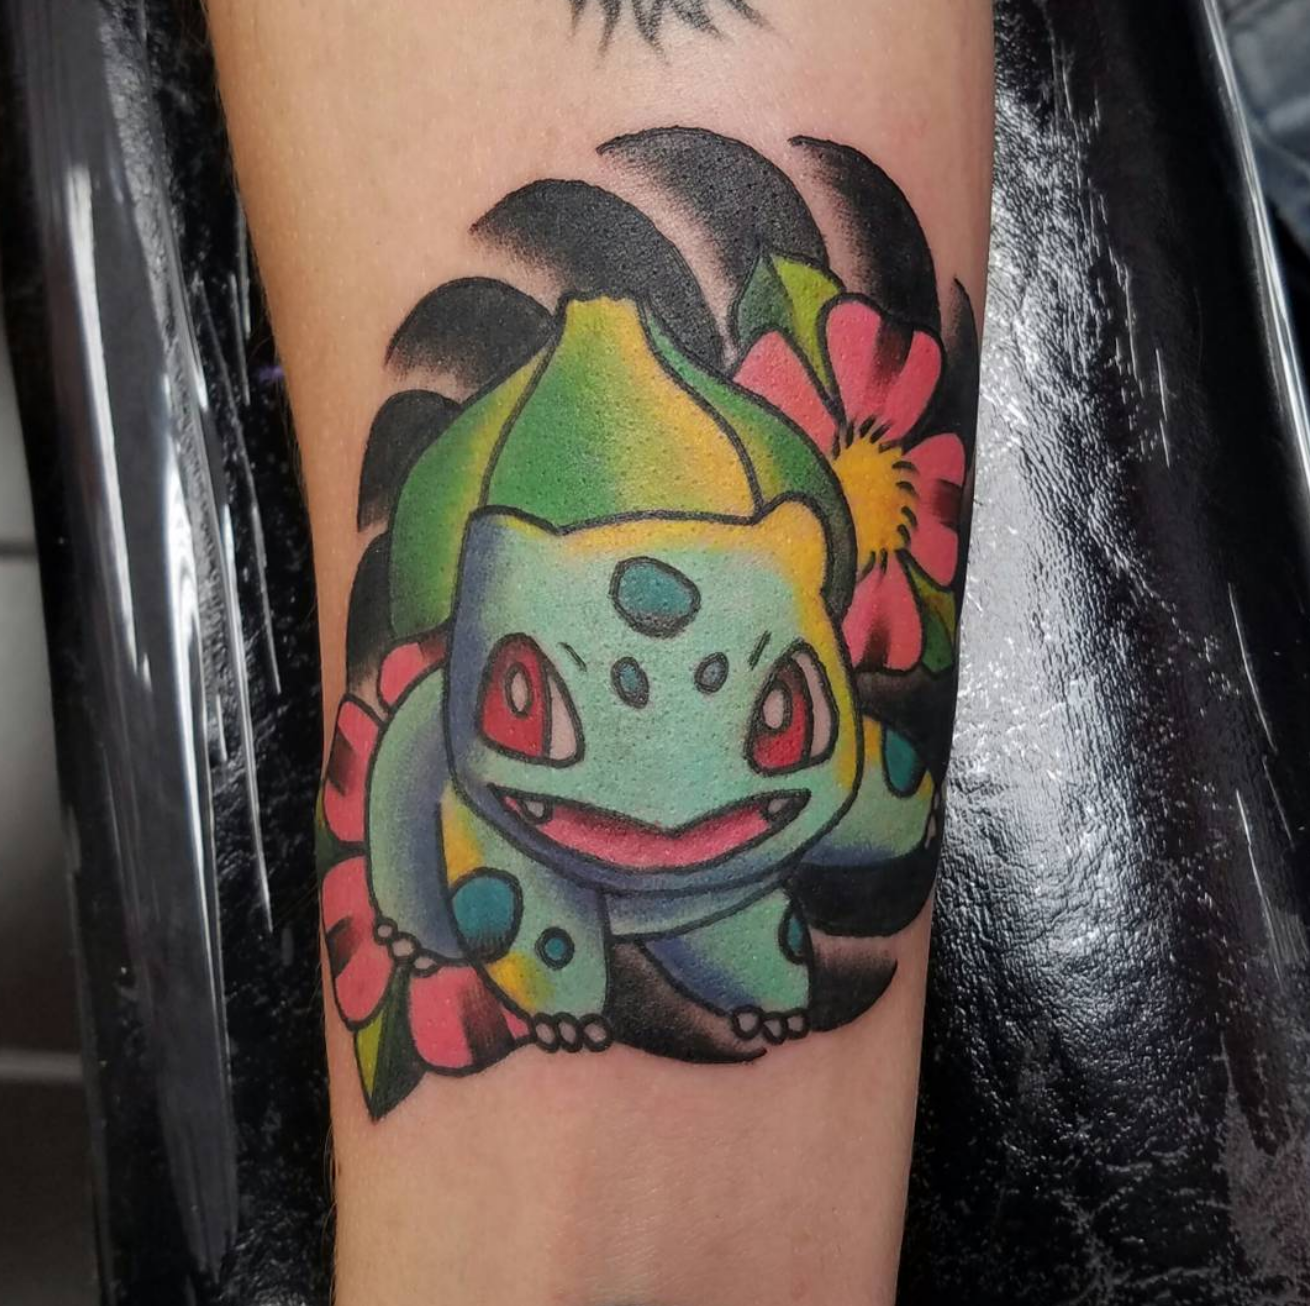 pokiemon tattoo